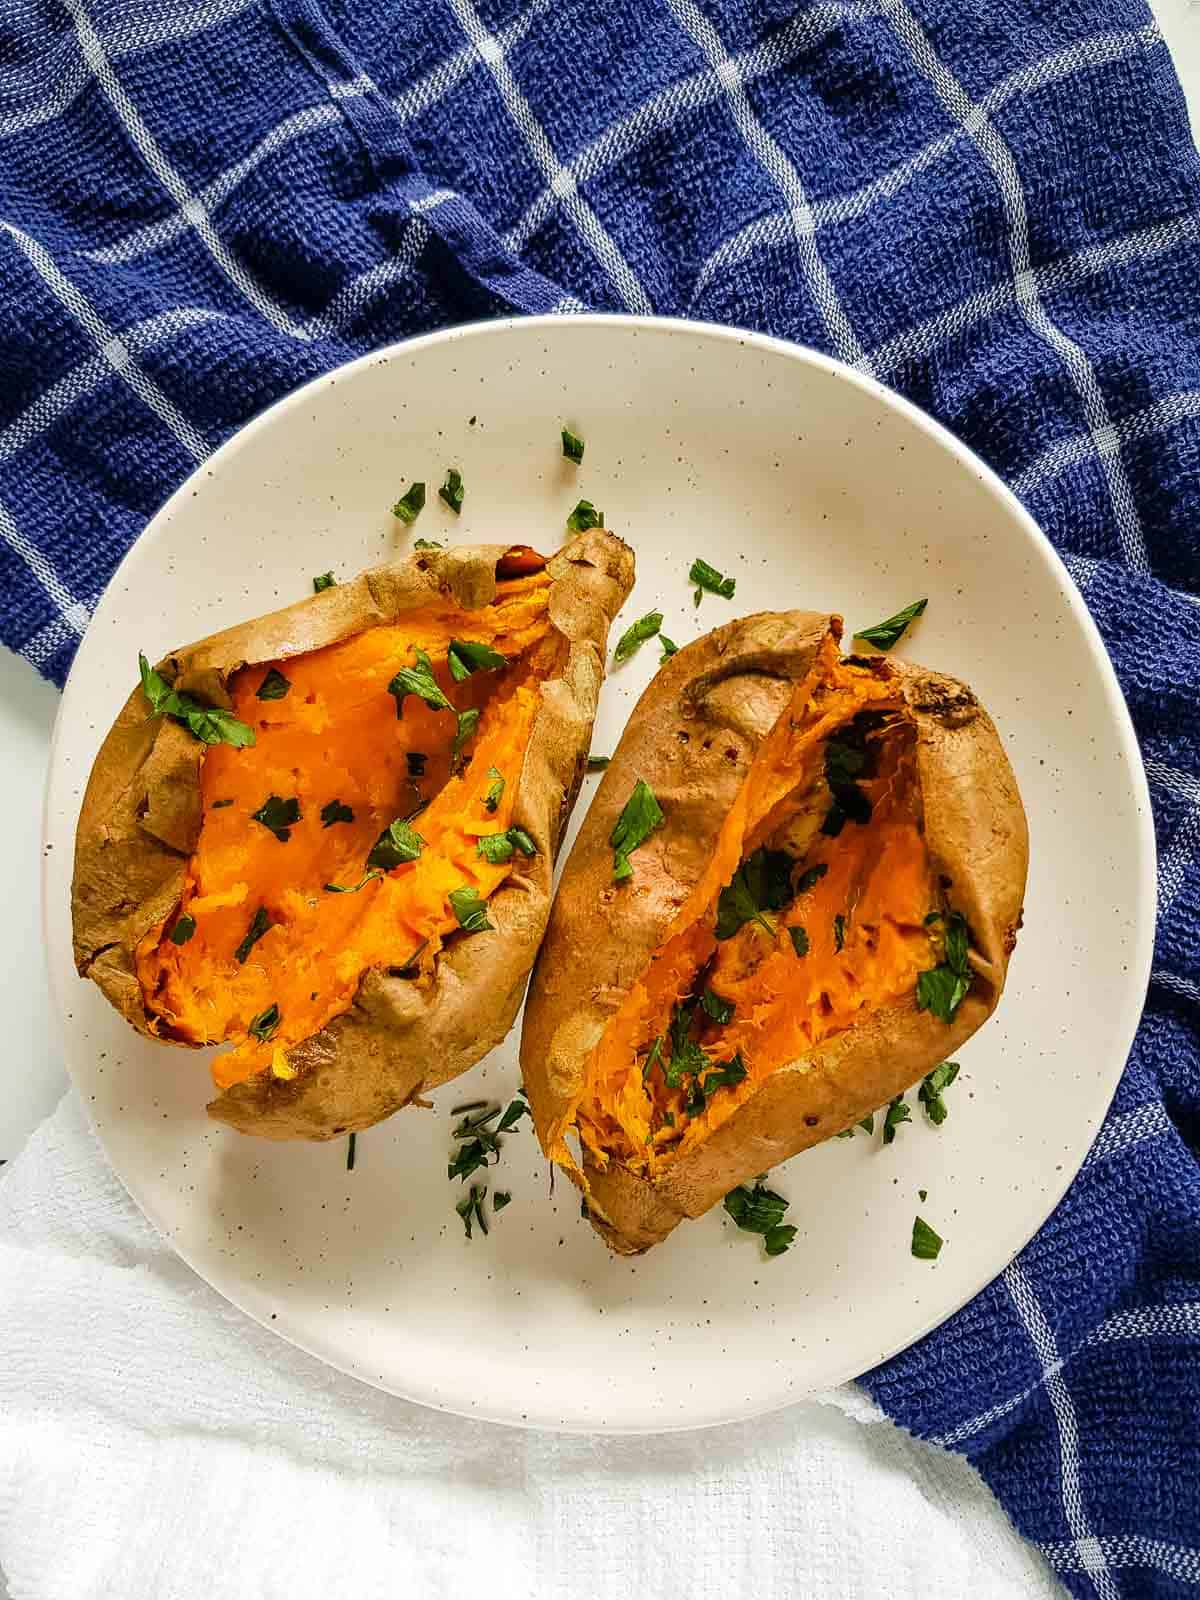 Air fryer sweet potatoes with parsley.